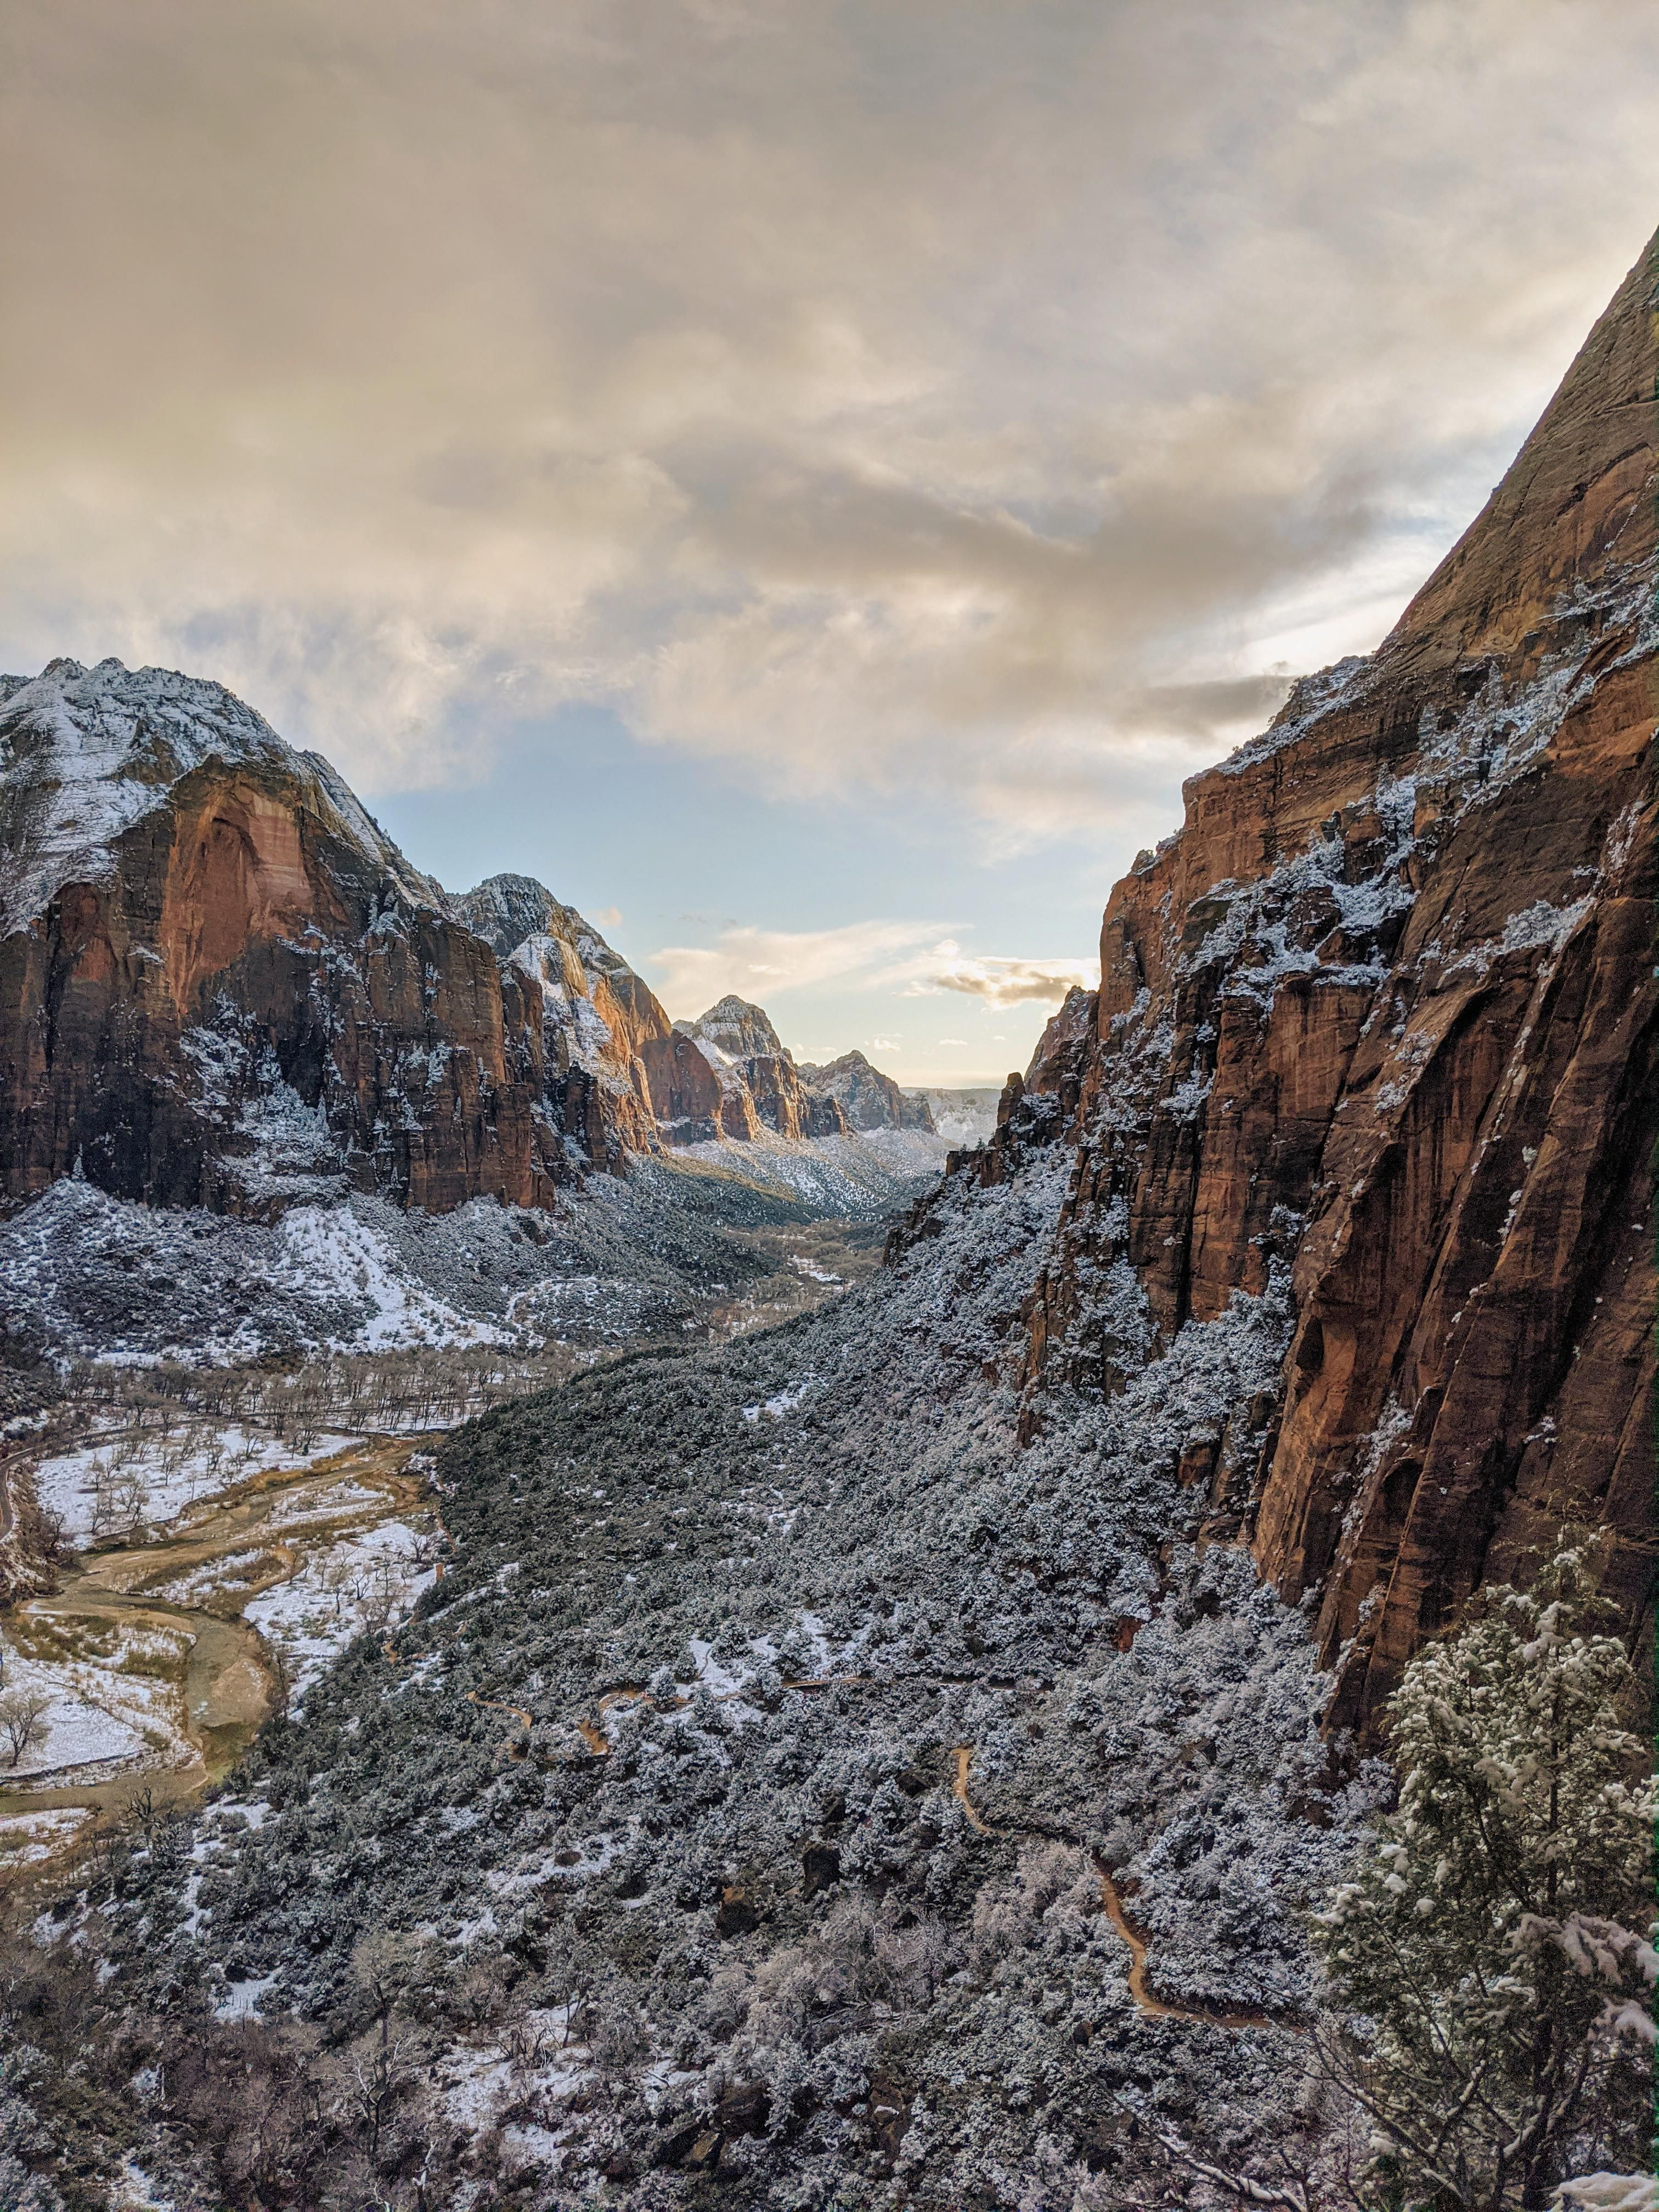 Zion National Park with a fresh dusting of snow this last Winter #nature #teesylvania #photos #amazingworld #world #amazingphotography #naturephotography #photography #incrediblephotos Check out teesylvania.com to find out how you can support the forests with style!